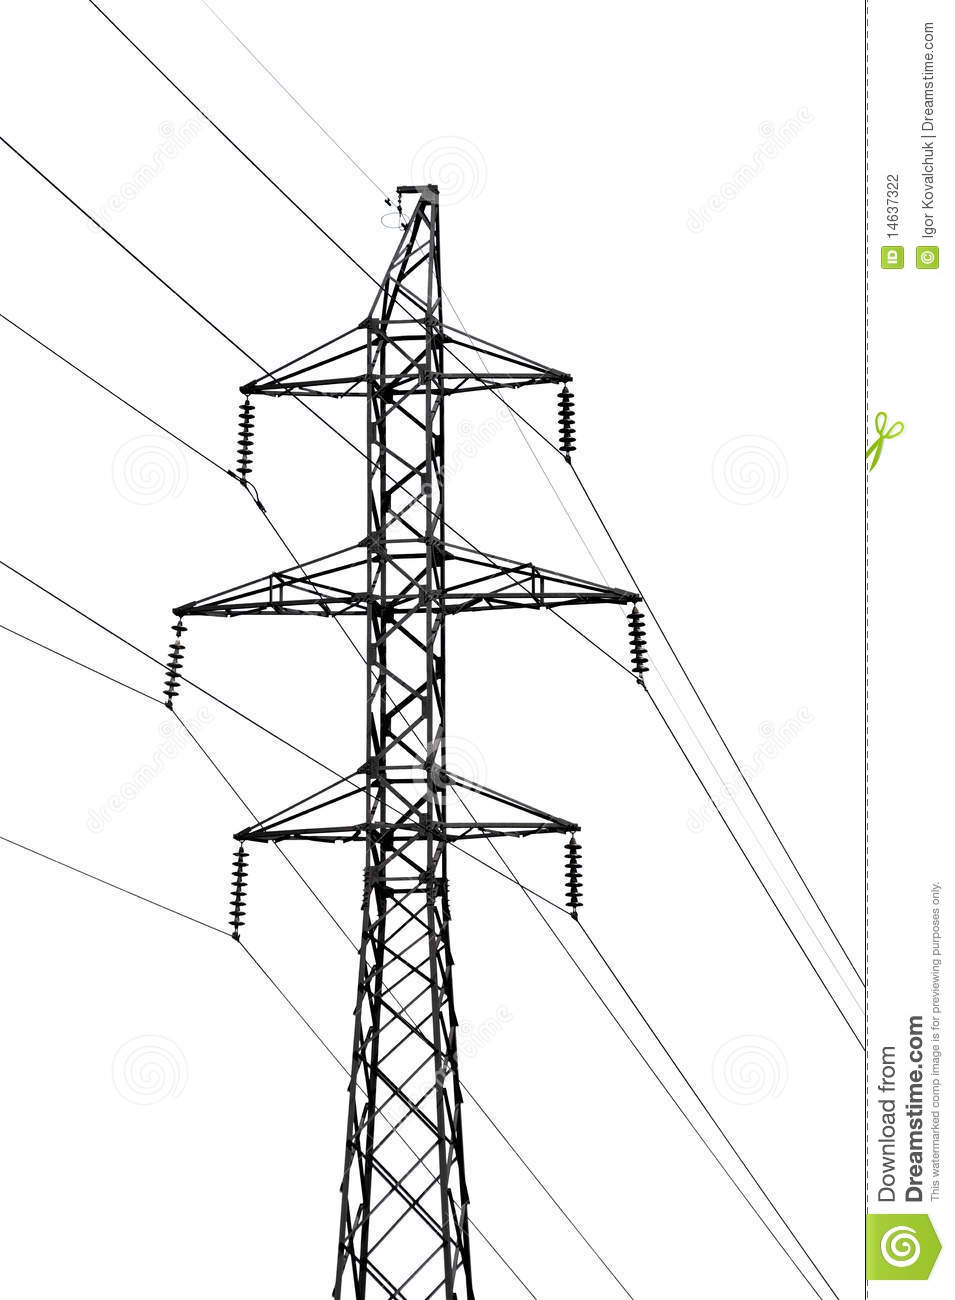 High-tension power line stock photo. Image of